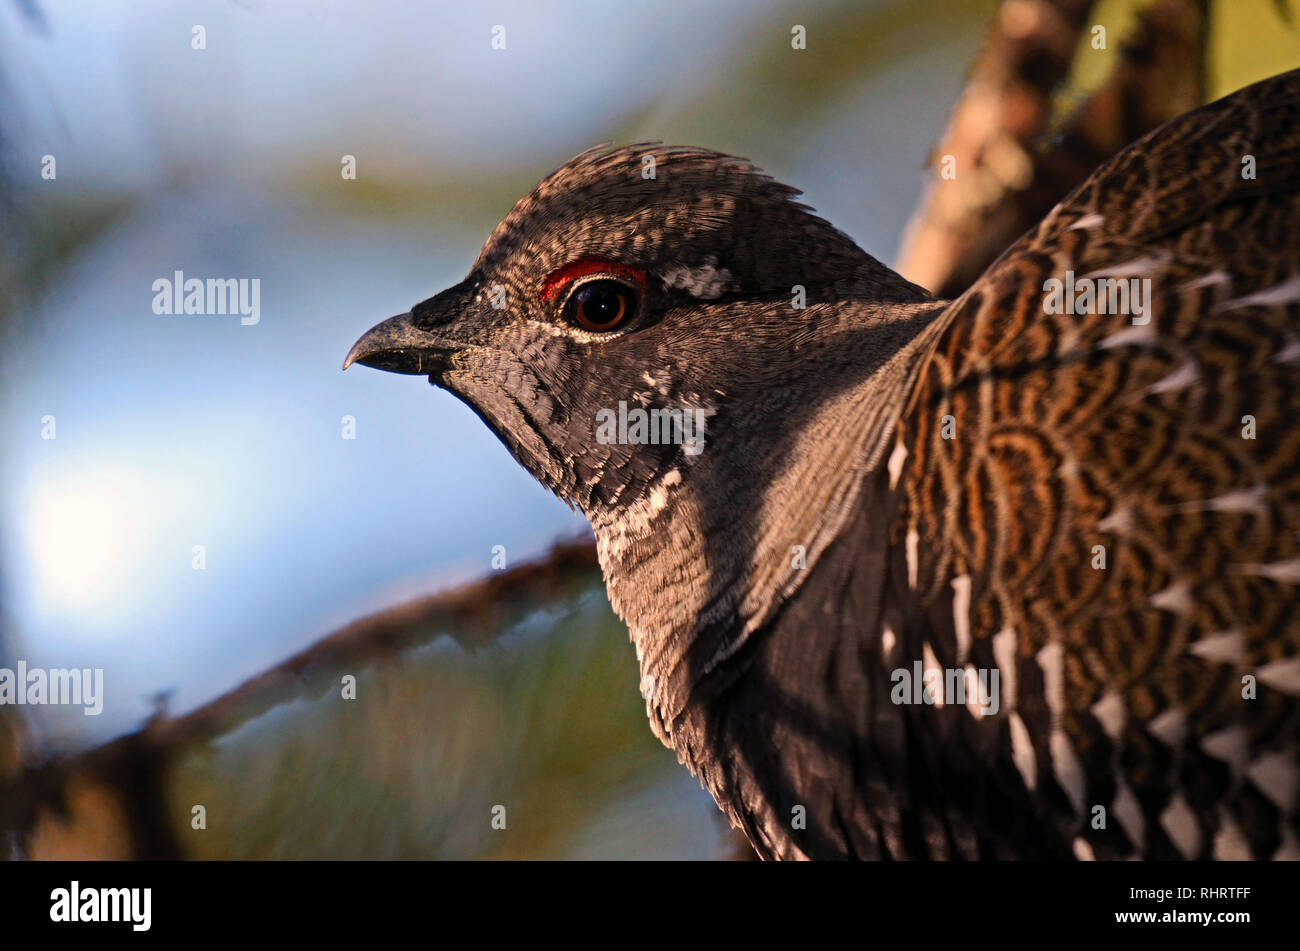 Spruce grouse in a conifer forest in fall. Kootenai National Forest in the Purcell Mountains, northwest Montana. - Stock Image